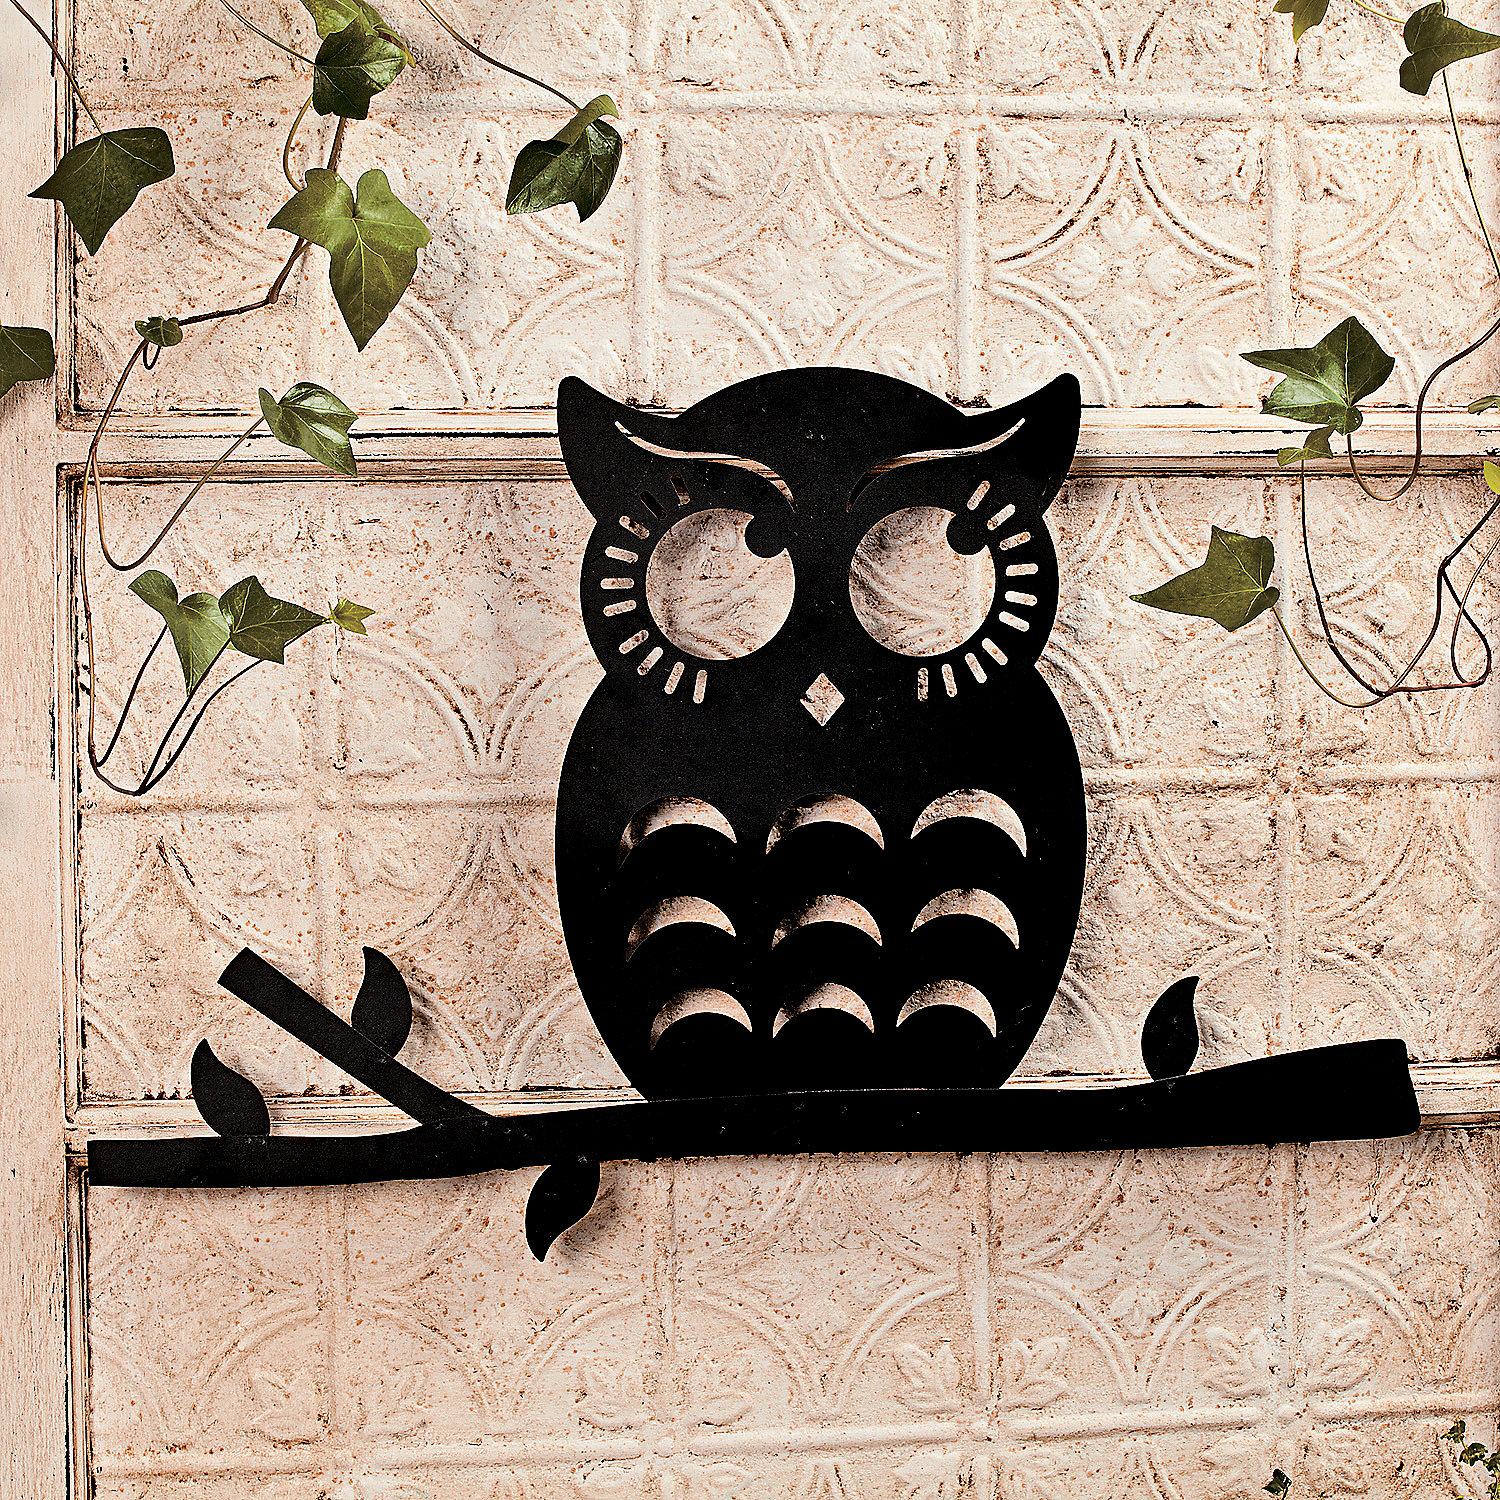 Home Decor, Accents, Holiday Decorations & Accessories